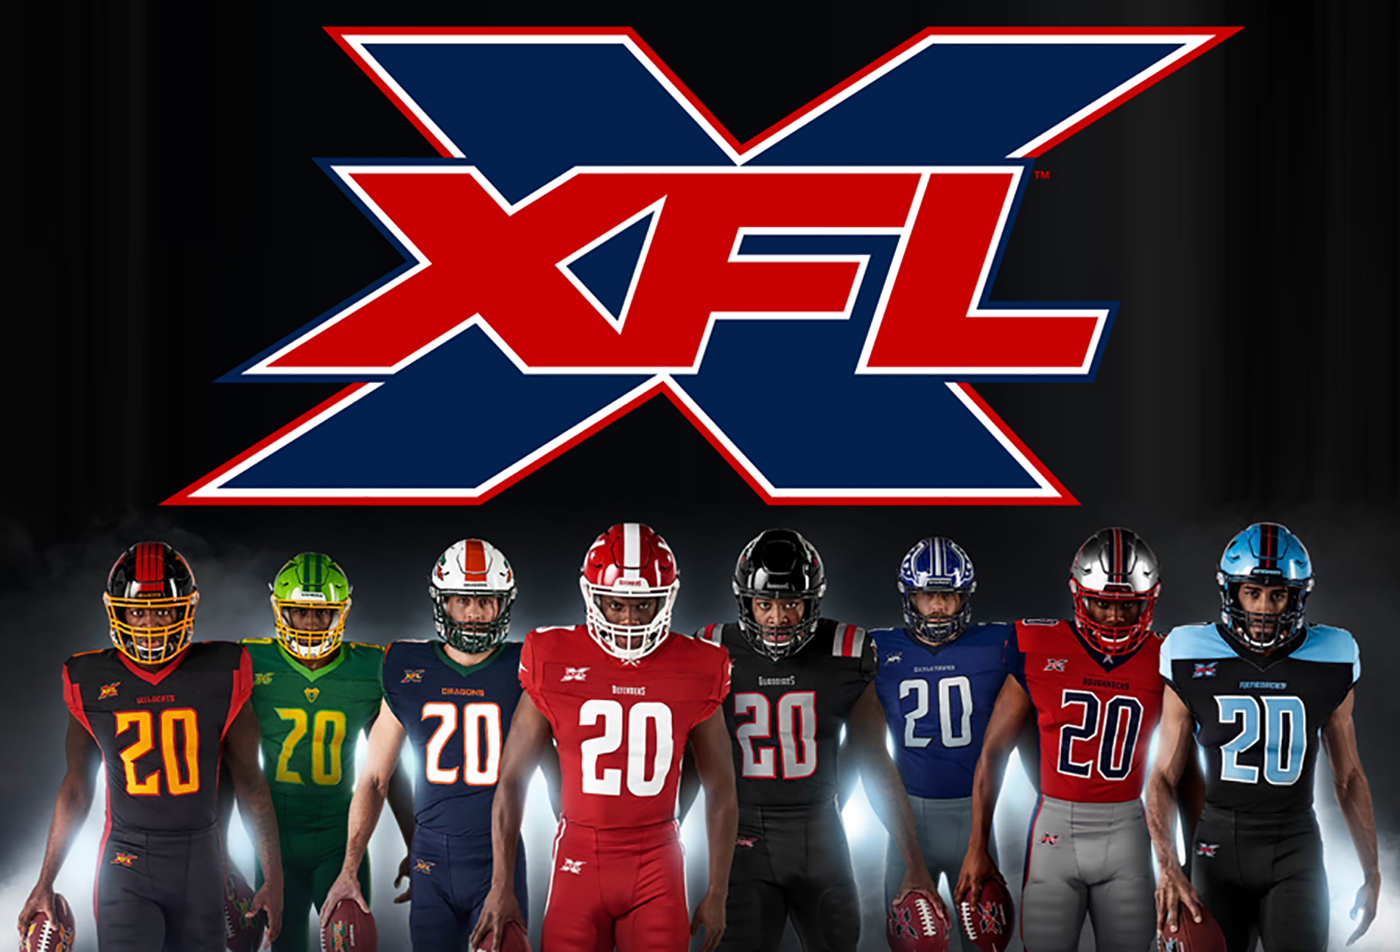 McMahon's failed projects XFL